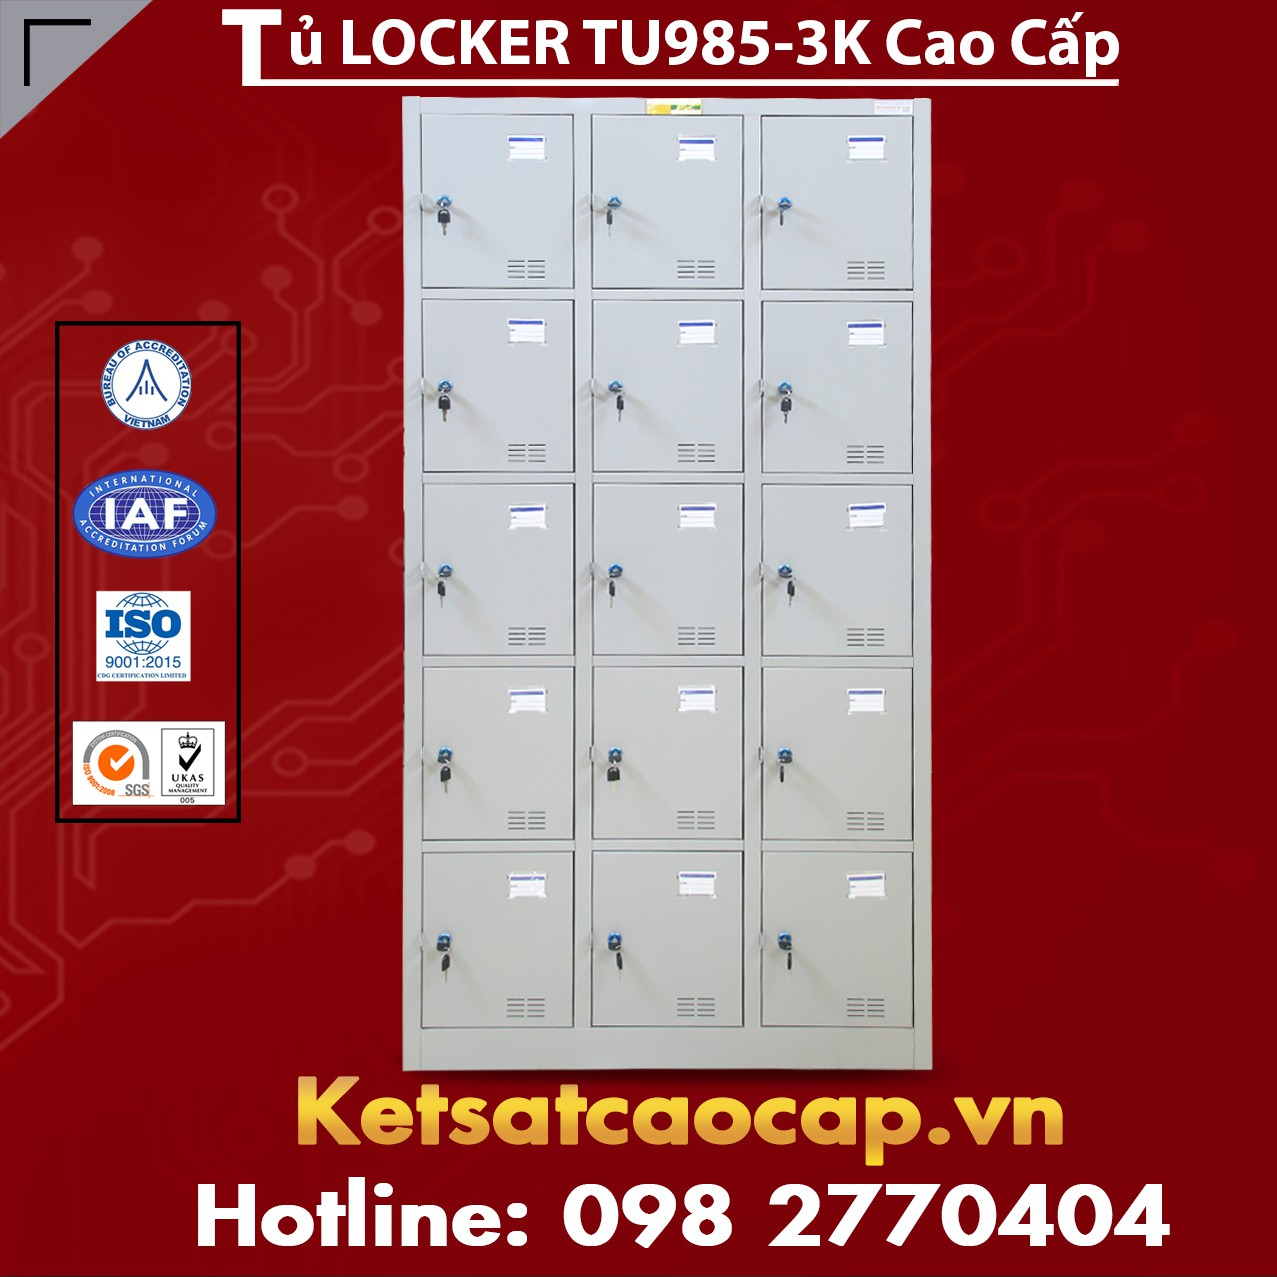 Tủ Locker TU985-3K